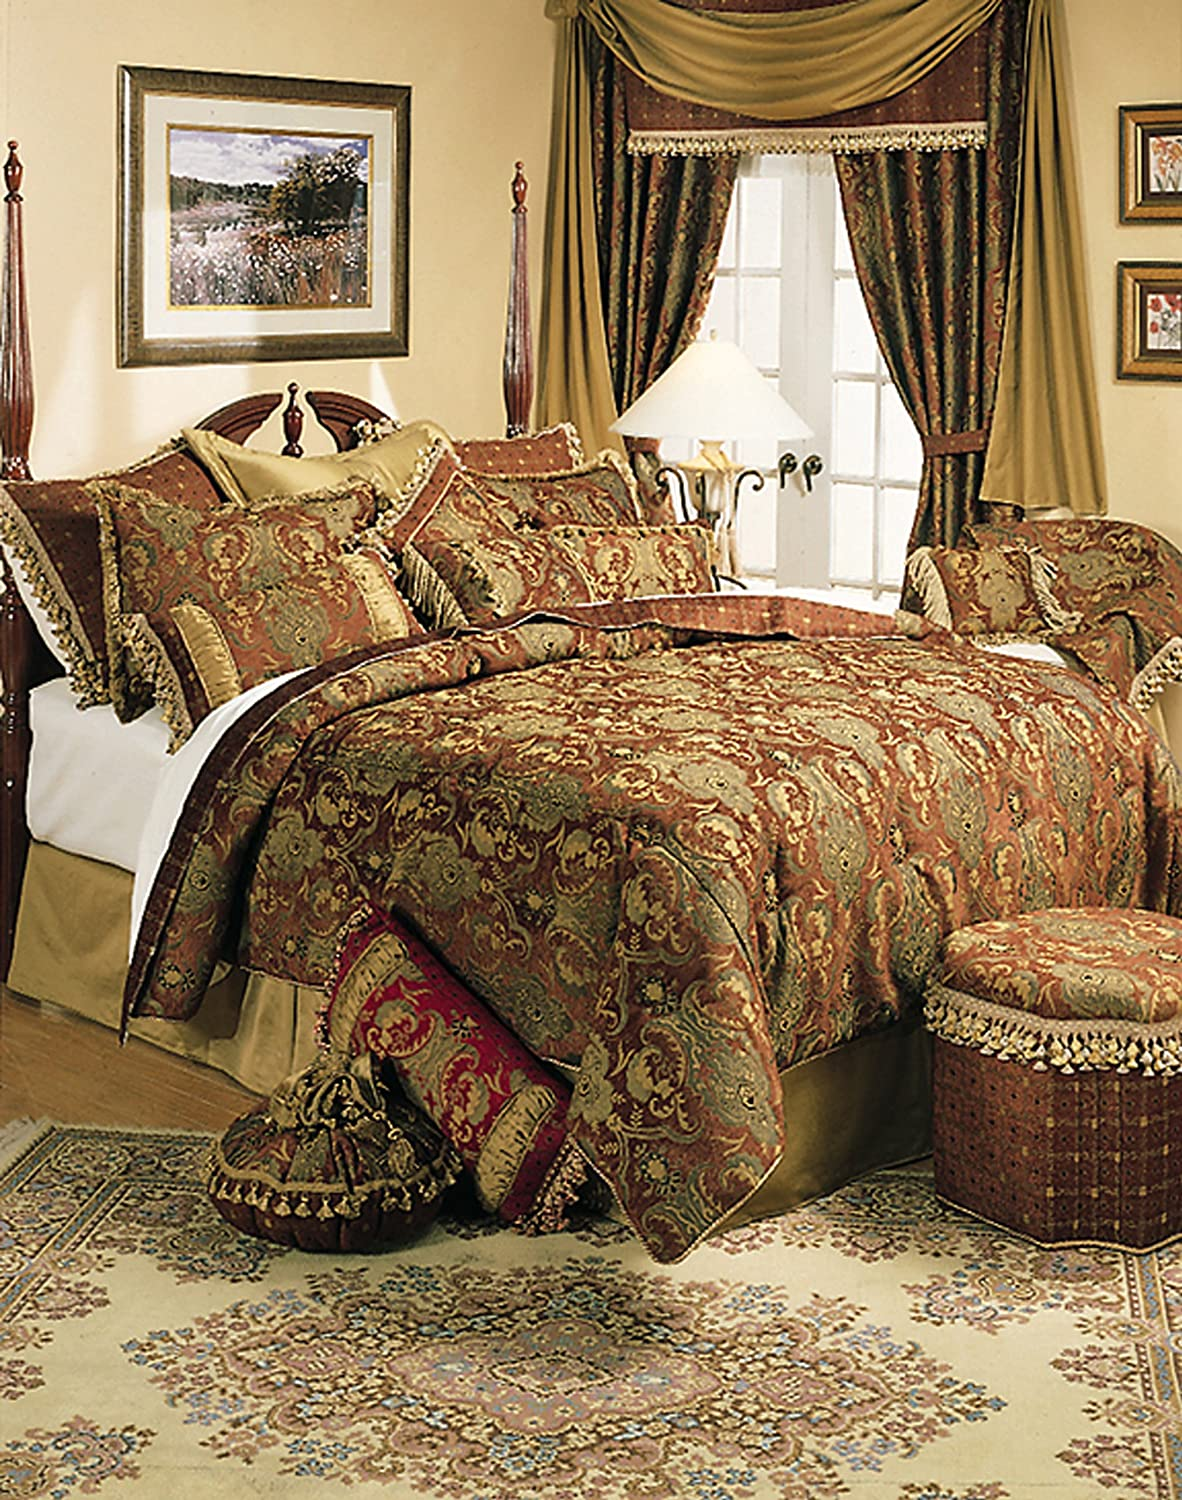 web large comforter percale ps collection lofthome the company box store art by